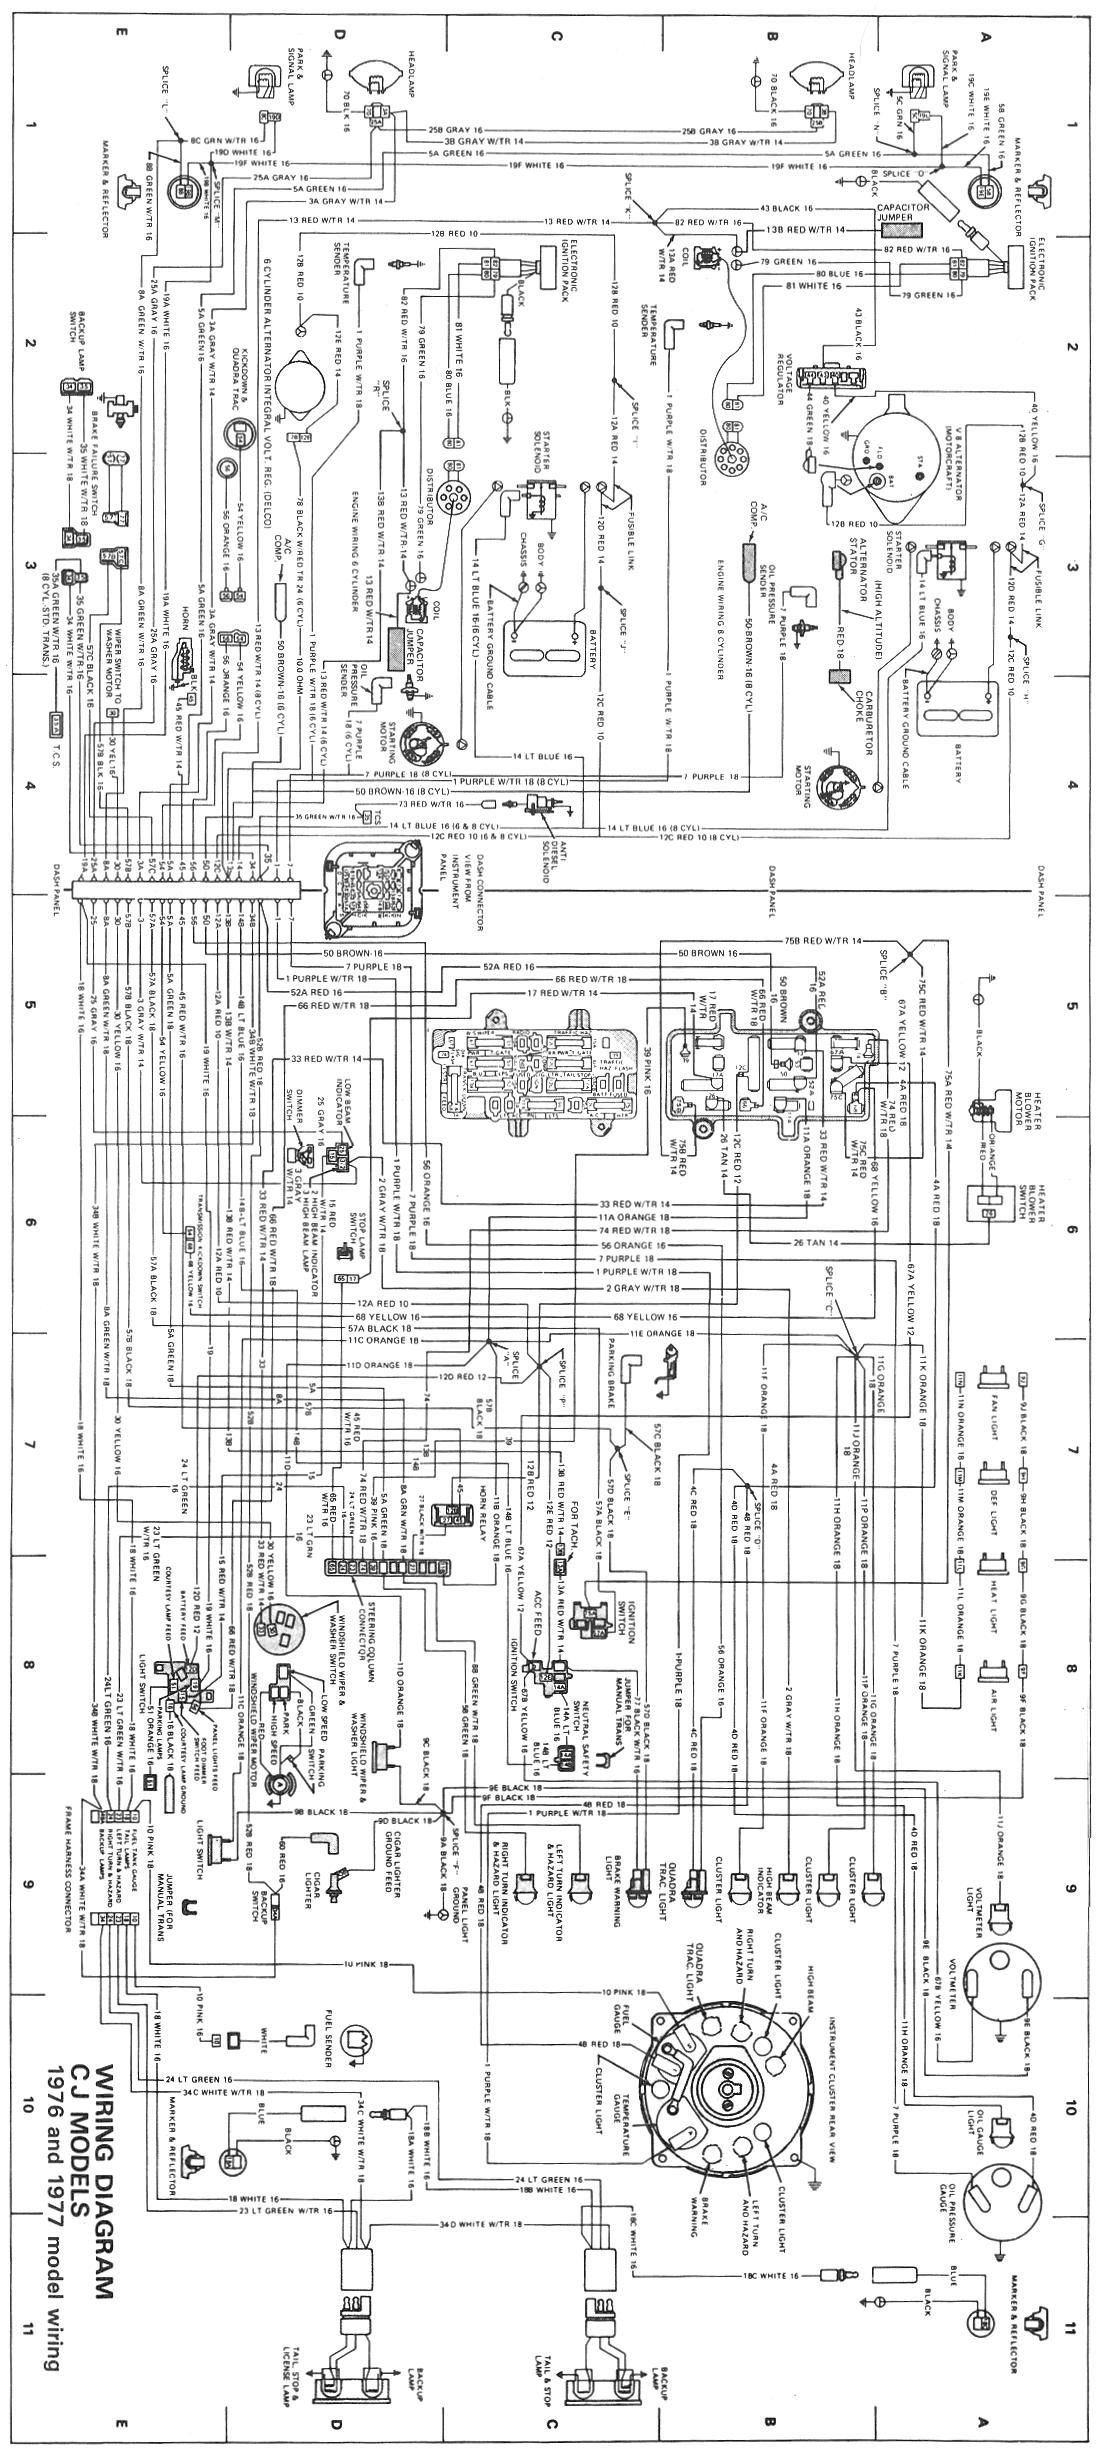 1982 Cj7 Fuse Panel Diagram Just Wirings 00 Explorer 1976 Jeep Wiring Detailed Schematics Rh Jppastryarts Com Box 2000 F150